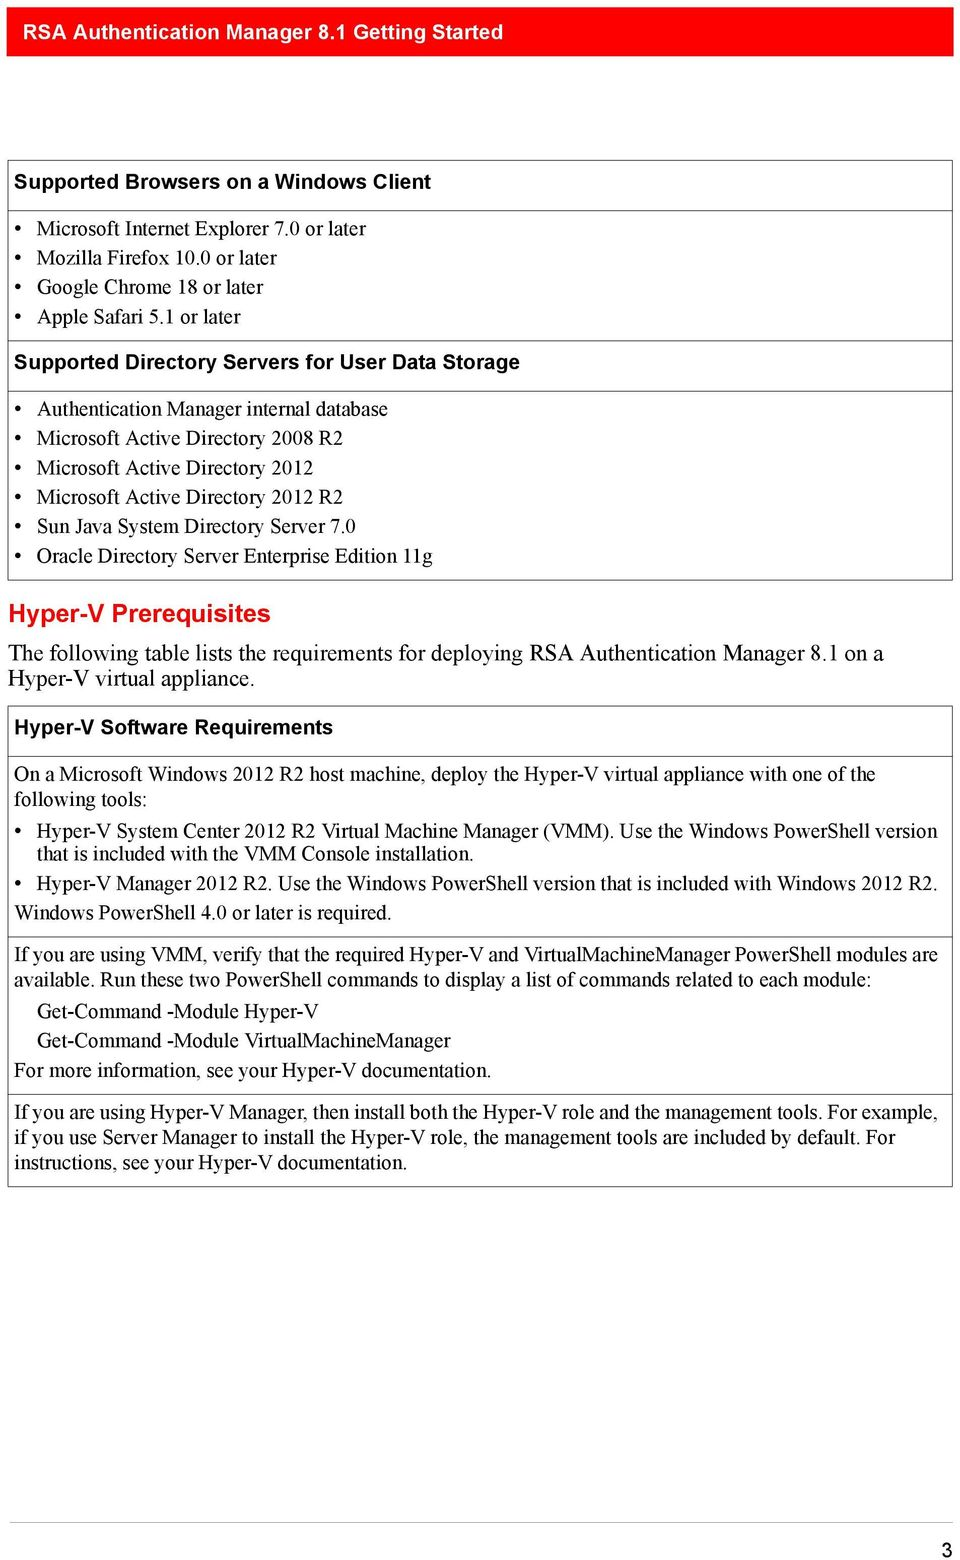 RSA Authentication Manager 8 1 Virtual Appliance Getting Started - PDF